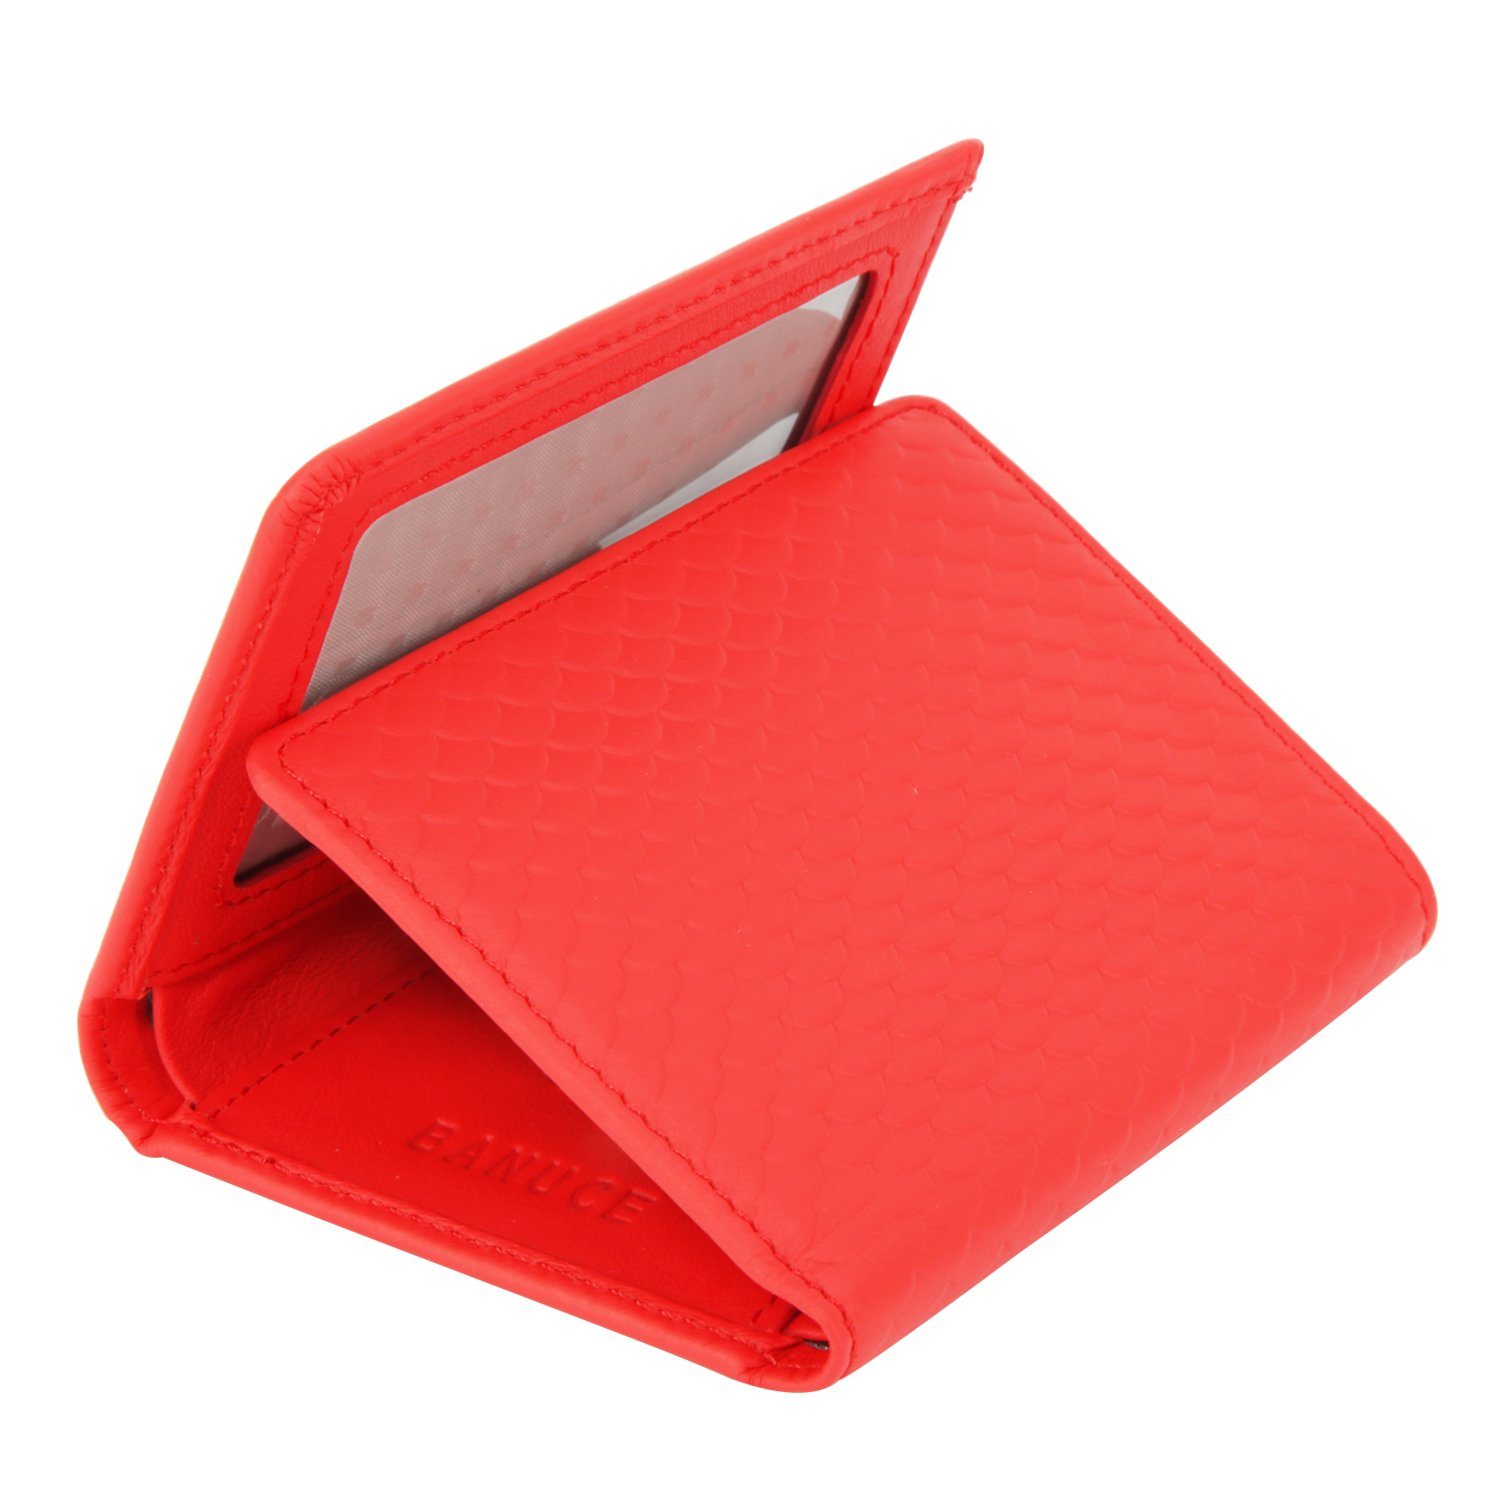 Banuce Women's Full Grains Genuine Leather Embossed Pattern Slim Small Item Trifold Wallet Color Red